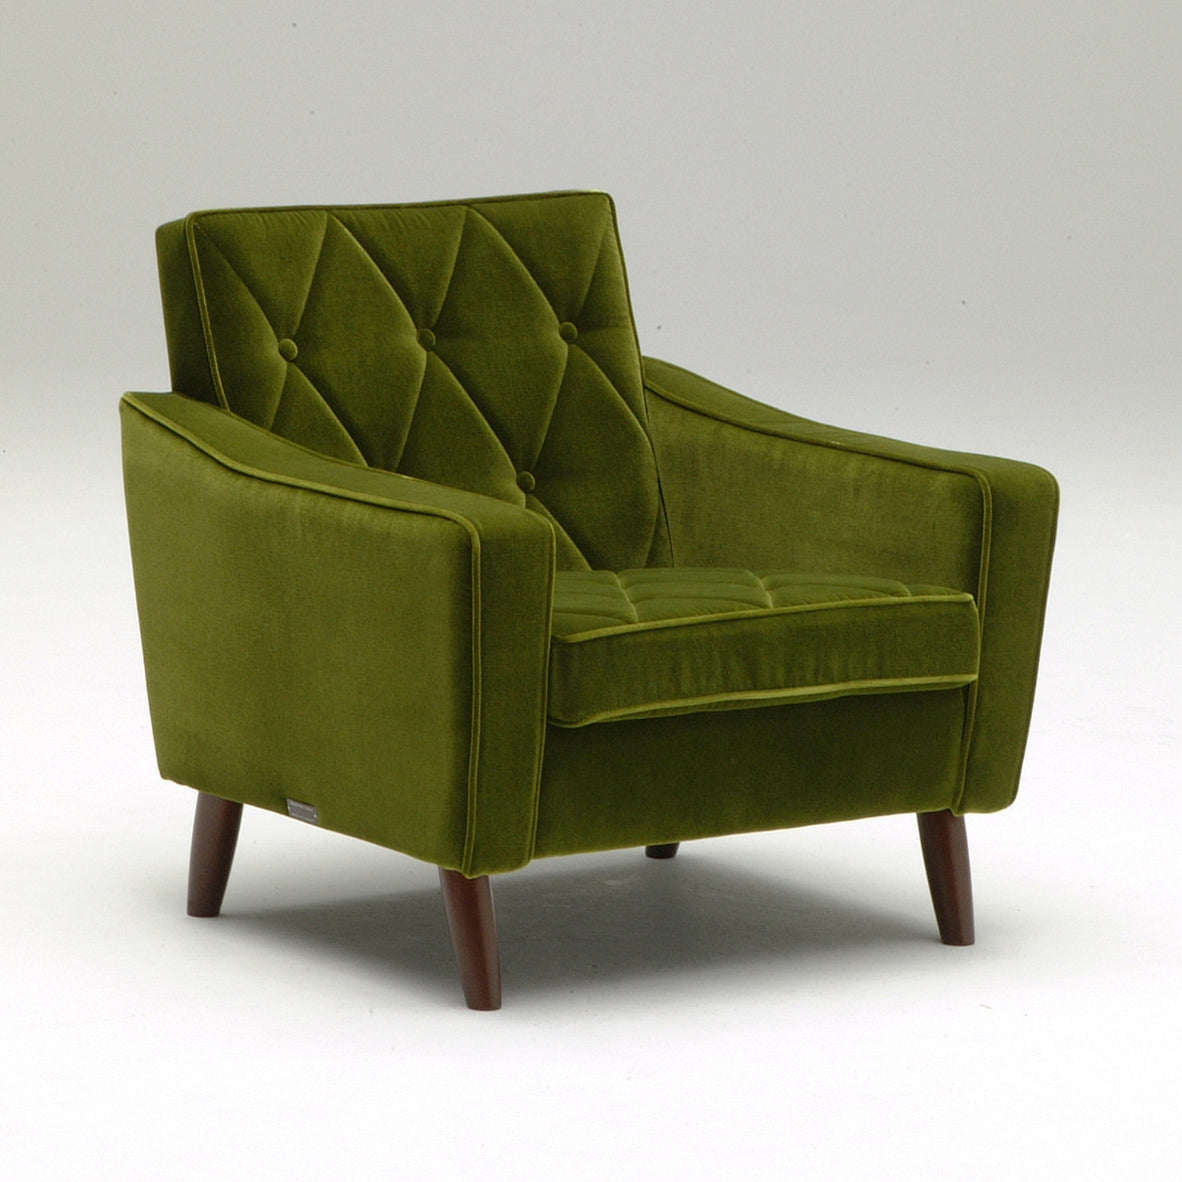 lobby chair one seater moquette green - Armchair - Karimoku60